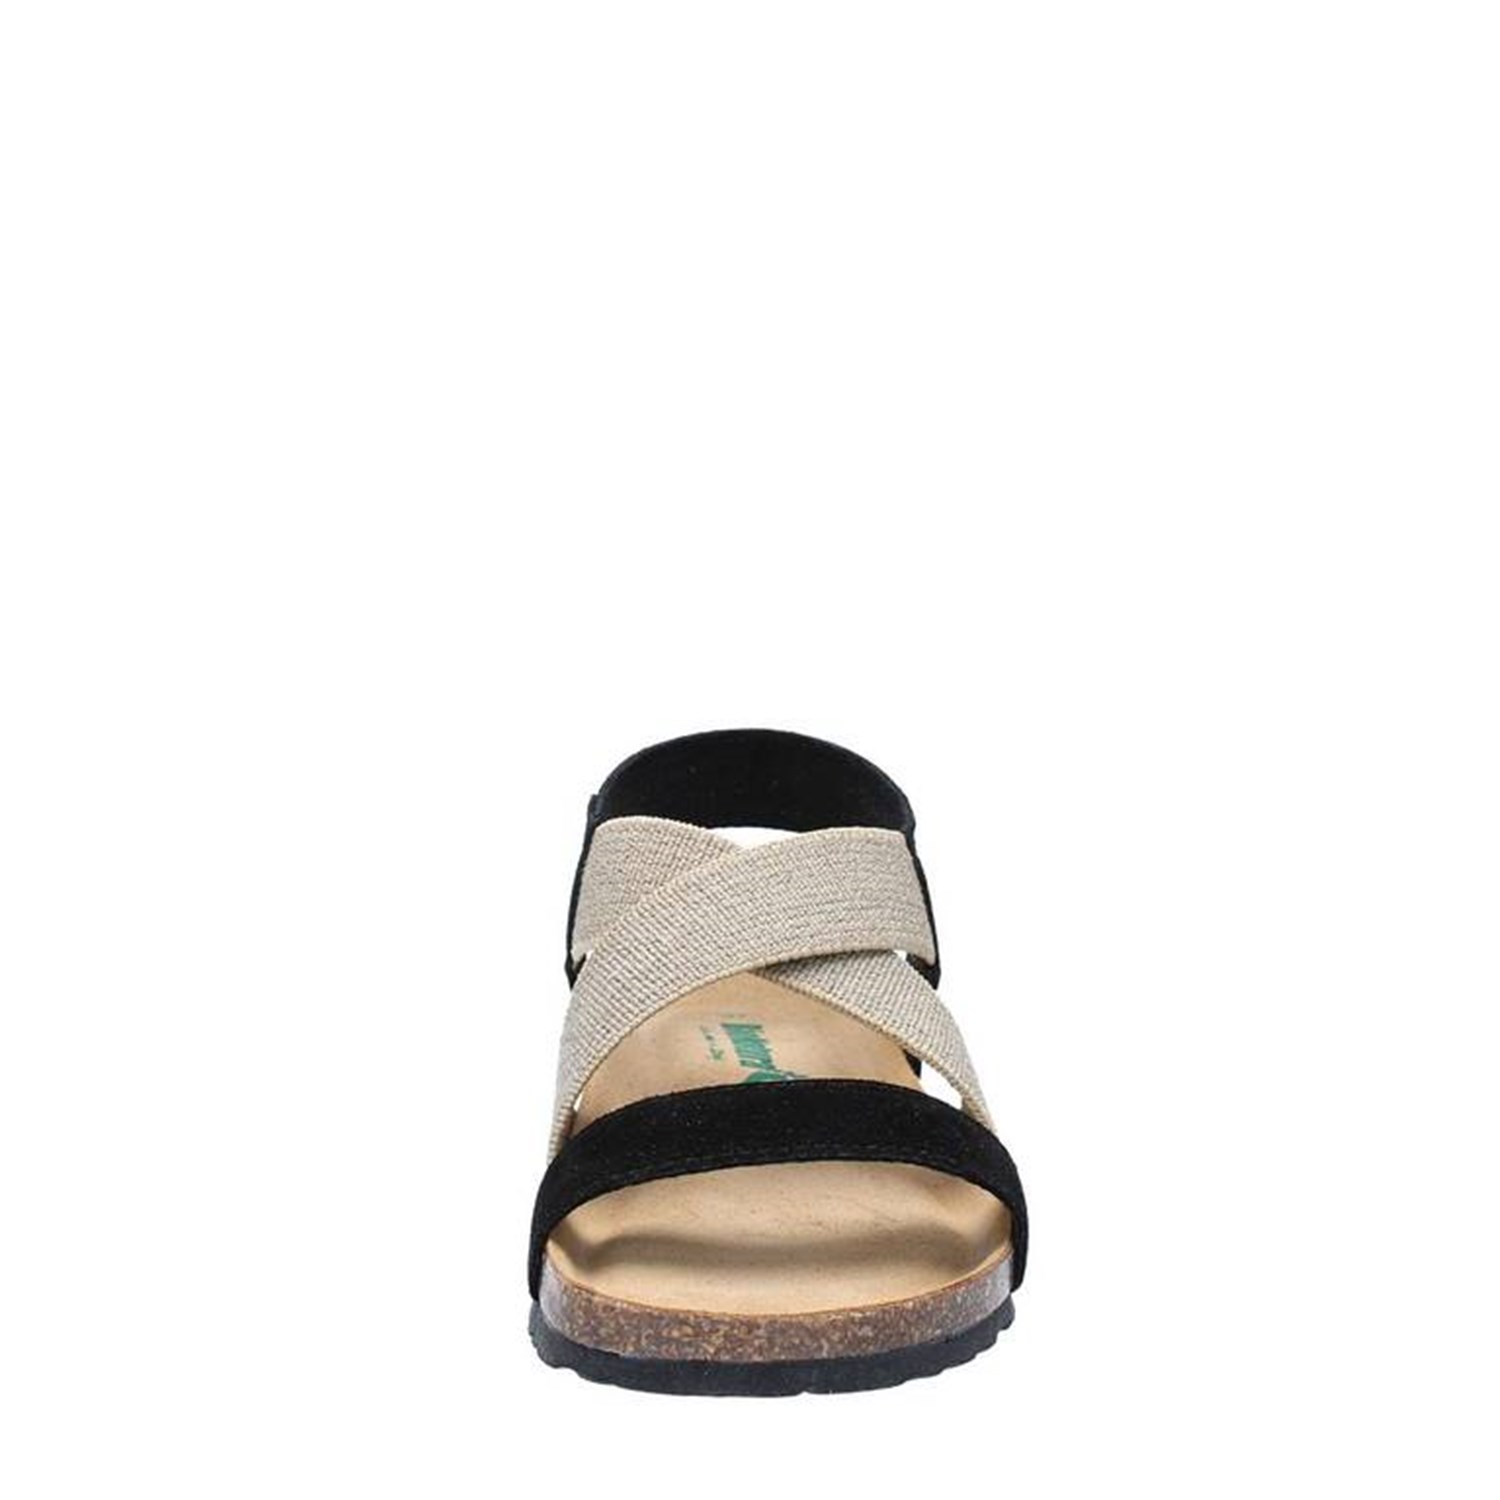 Bionatura Shoes Woman With wedge BLACK 12A998